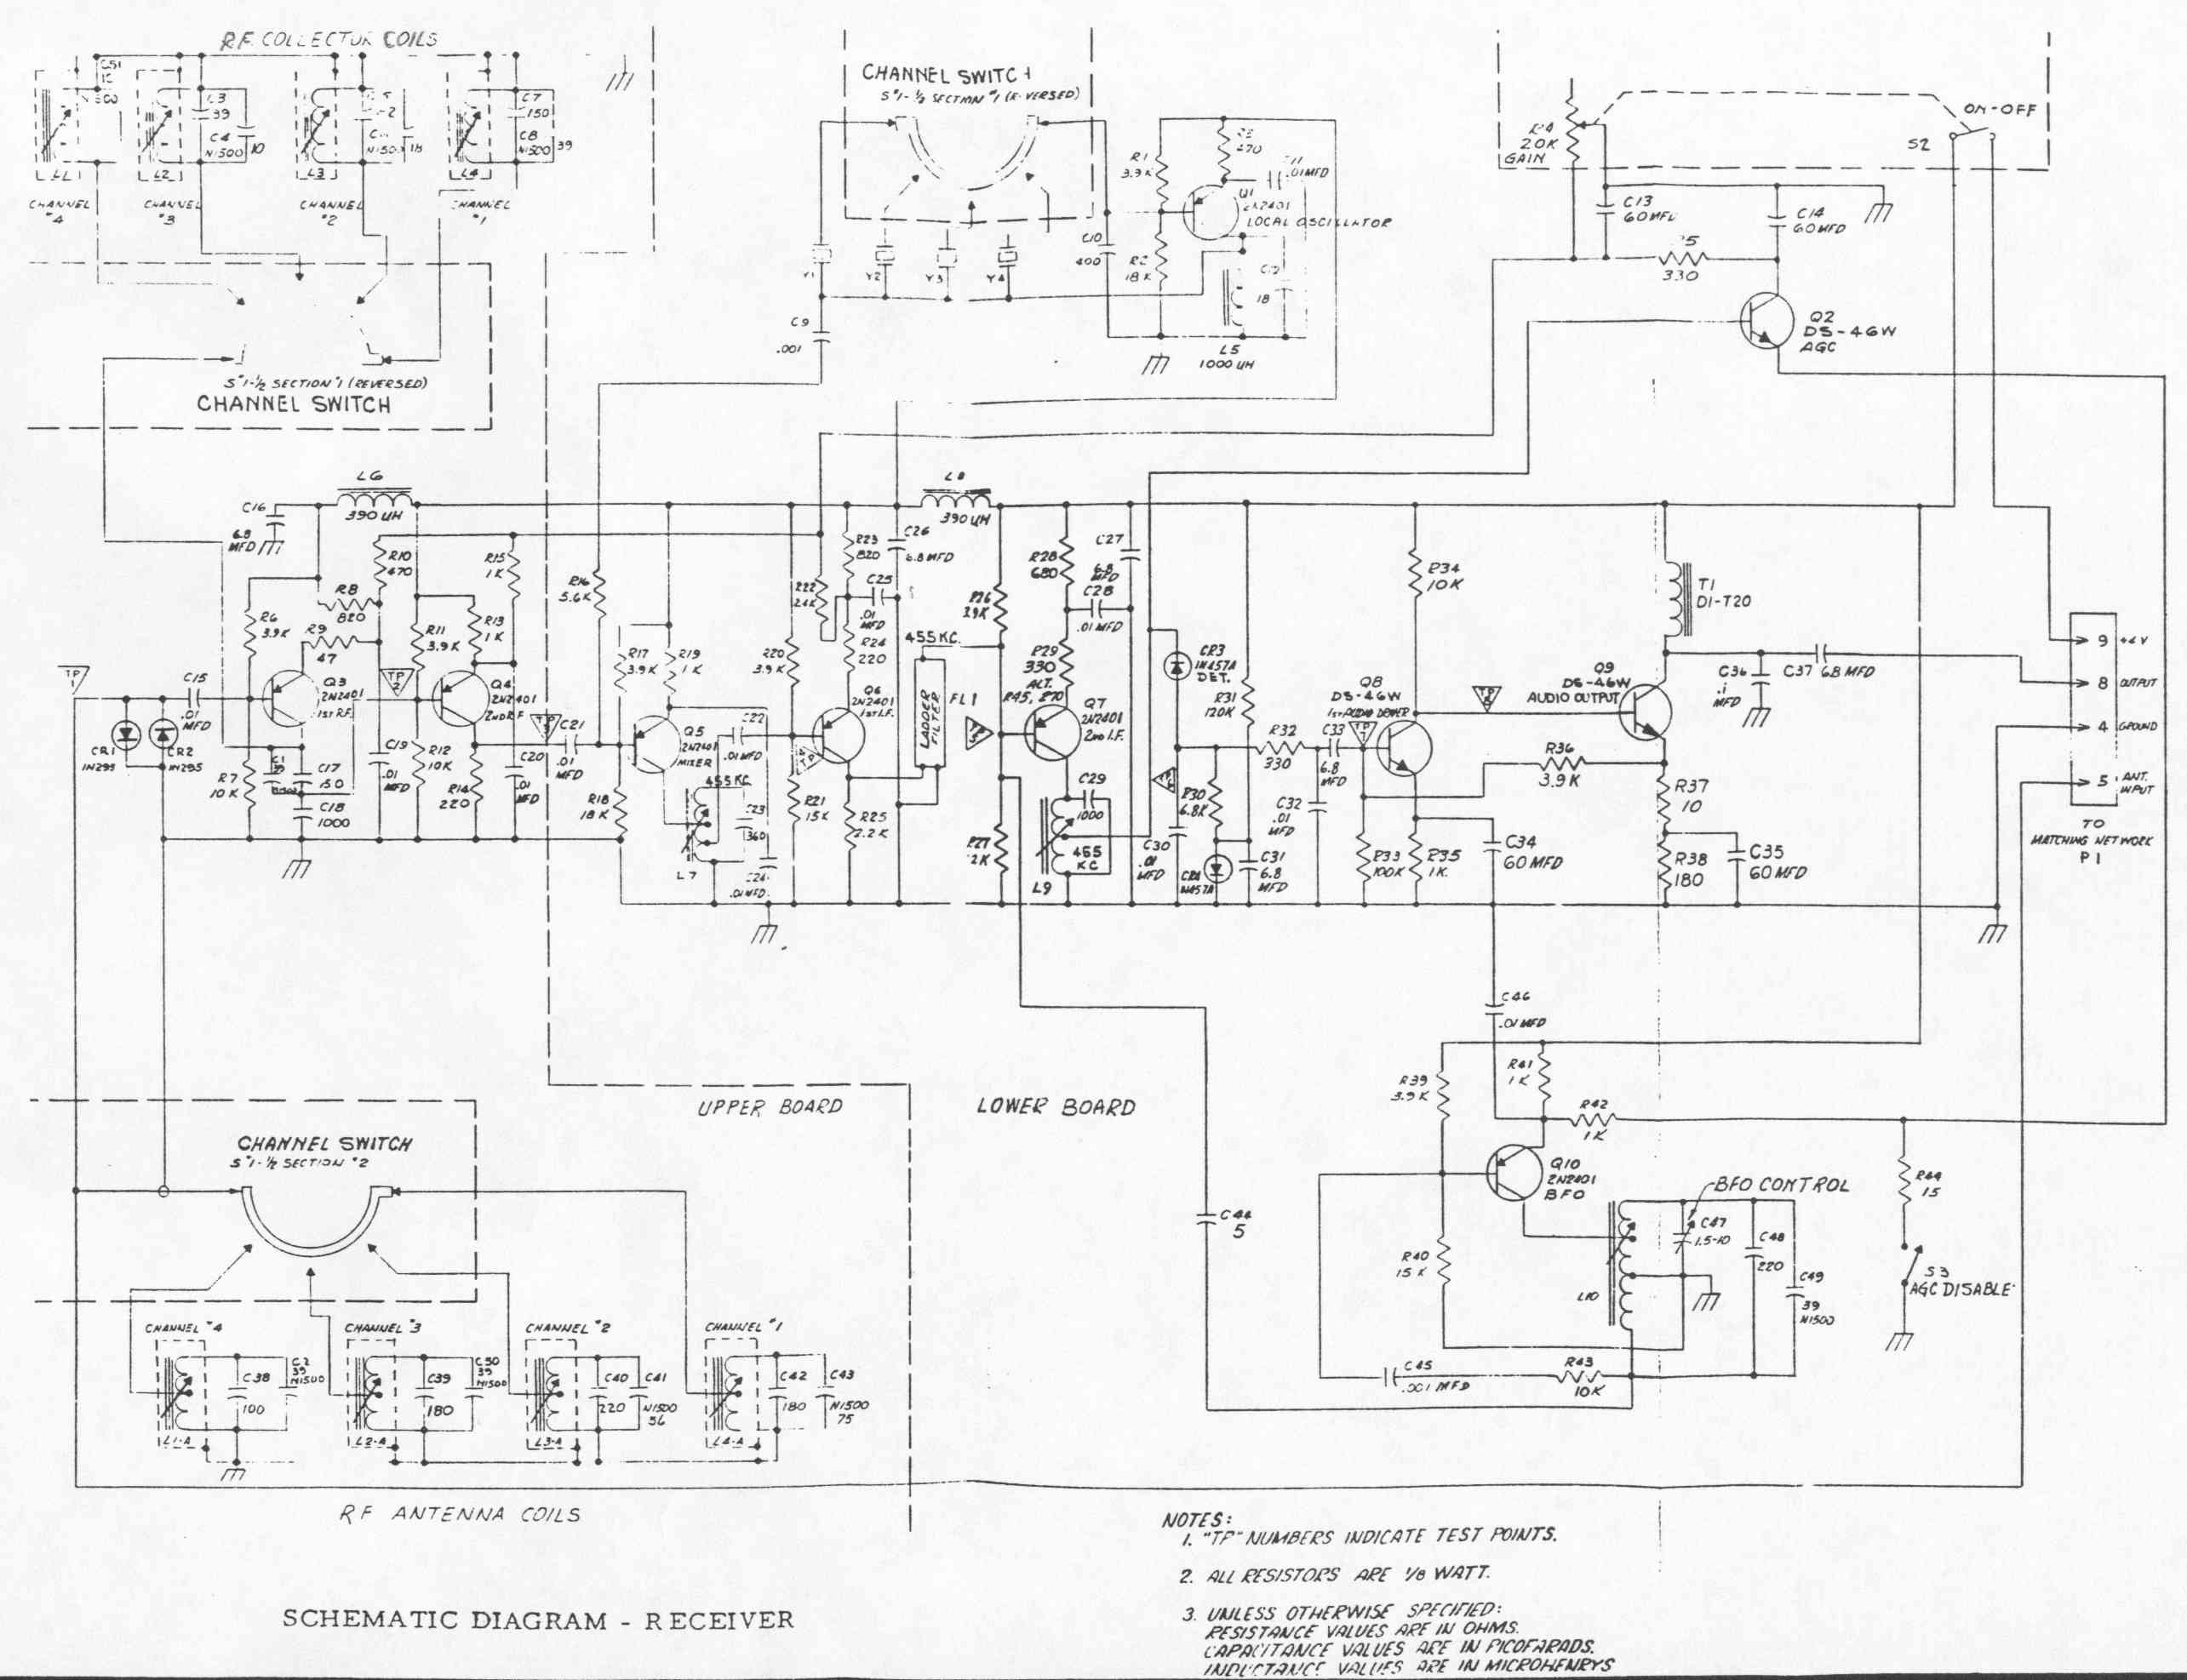 Delco Radio Schematics Expert Wiring Diagrams Diagram Delco5300 Schematic 5300a Receiver